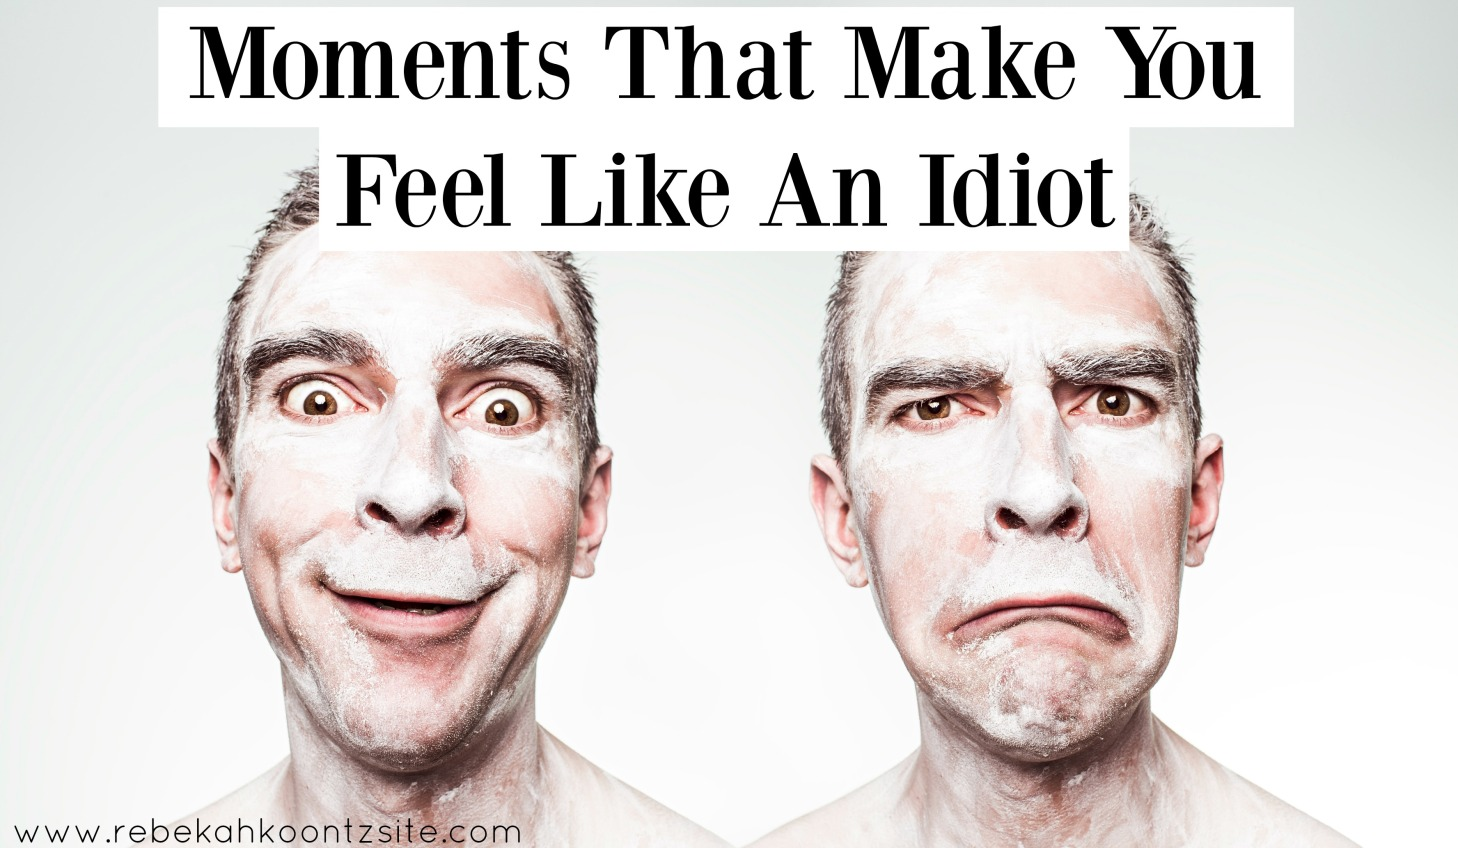 moments-that-make-you-feel-like-an-idiot-humor-funny-rebekah-koontz